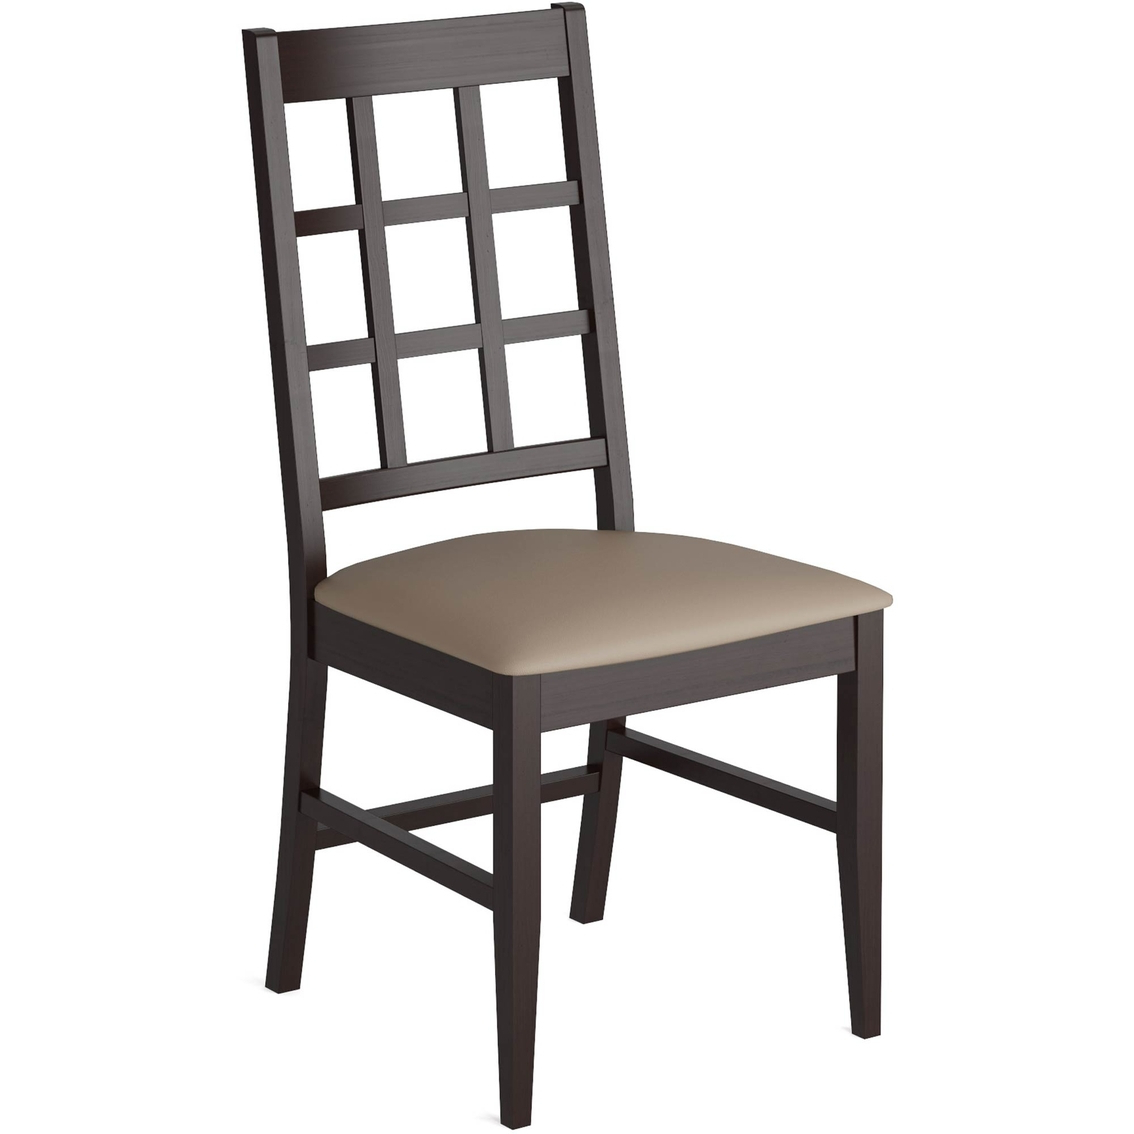 Corliving Atwood Dining Chairs With Leatherette Seat 2 Pk For Favorite Atwood Transitional Square Dining Tables (View 21 of 25)